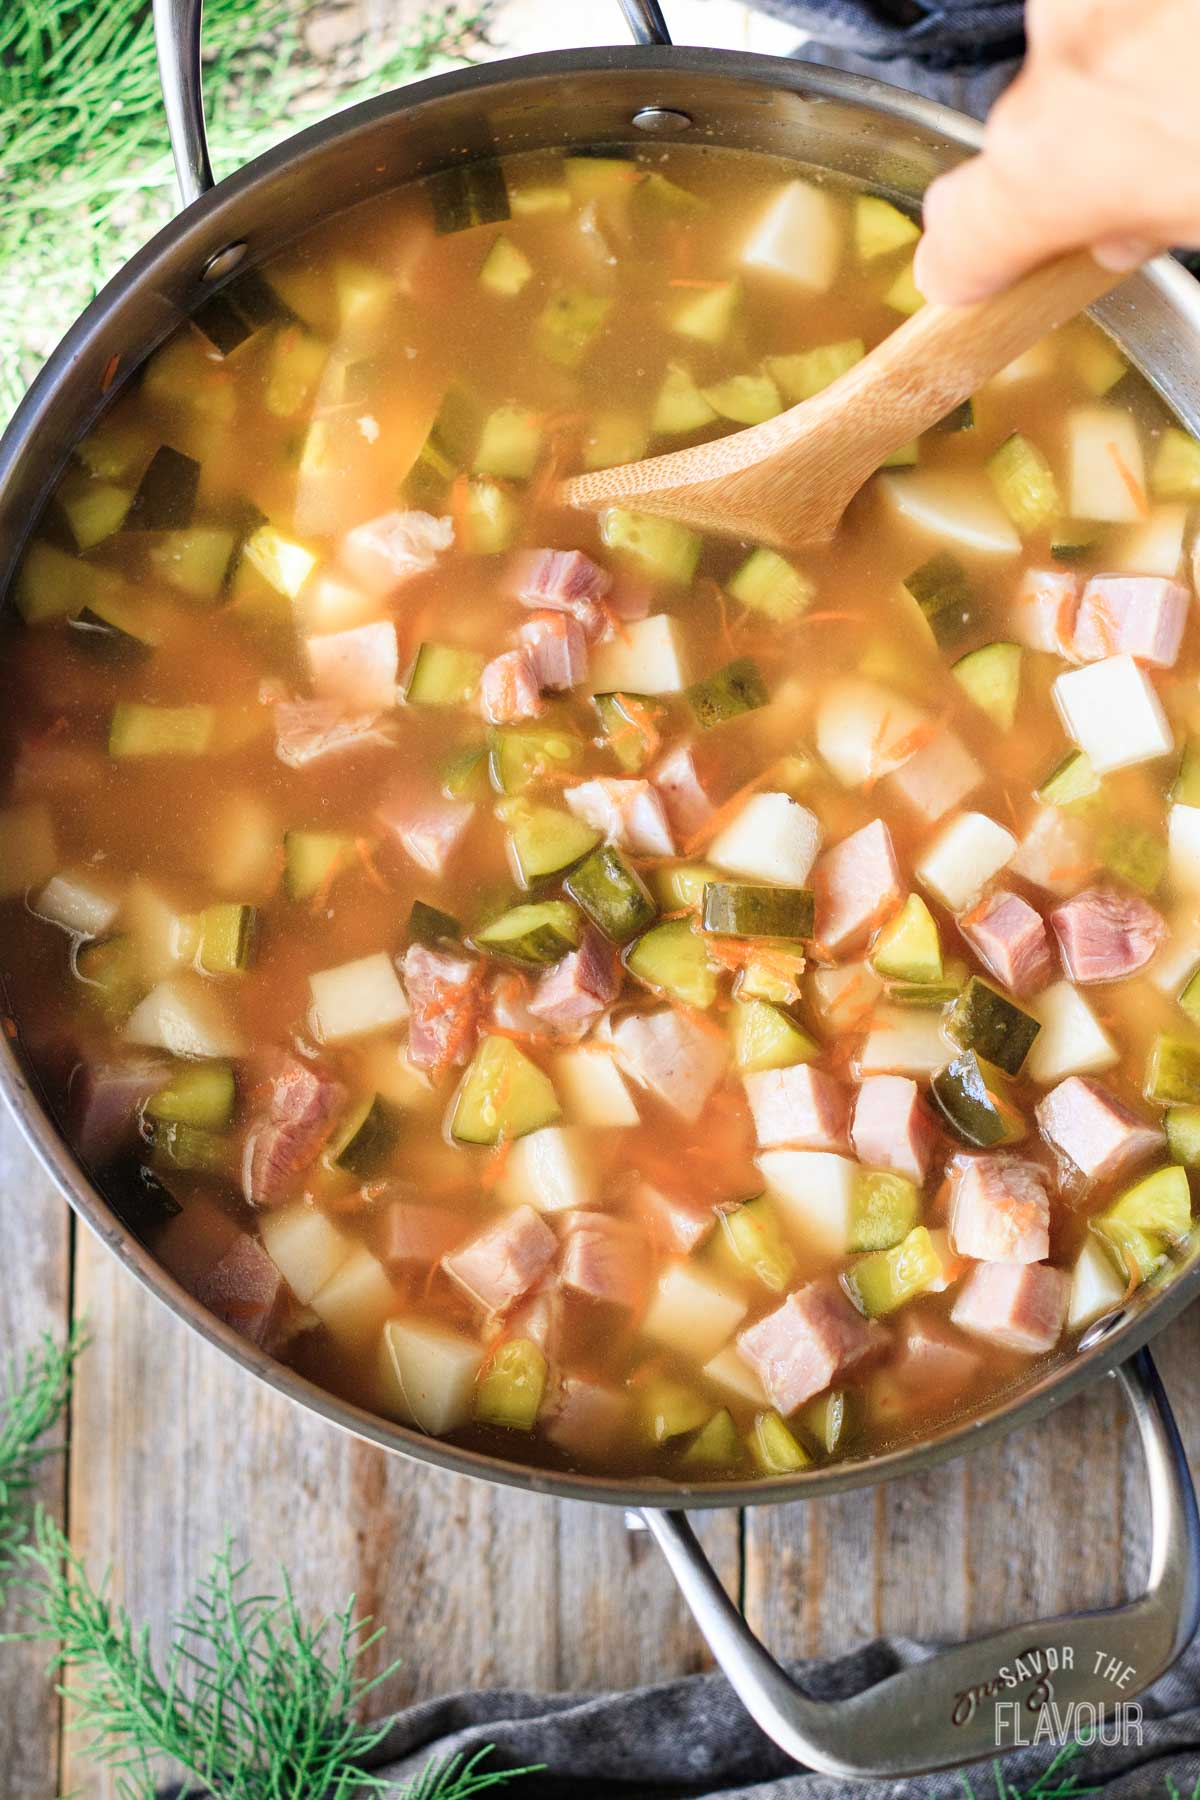 stirring a pot of broth with pickles, ham, and potatoes